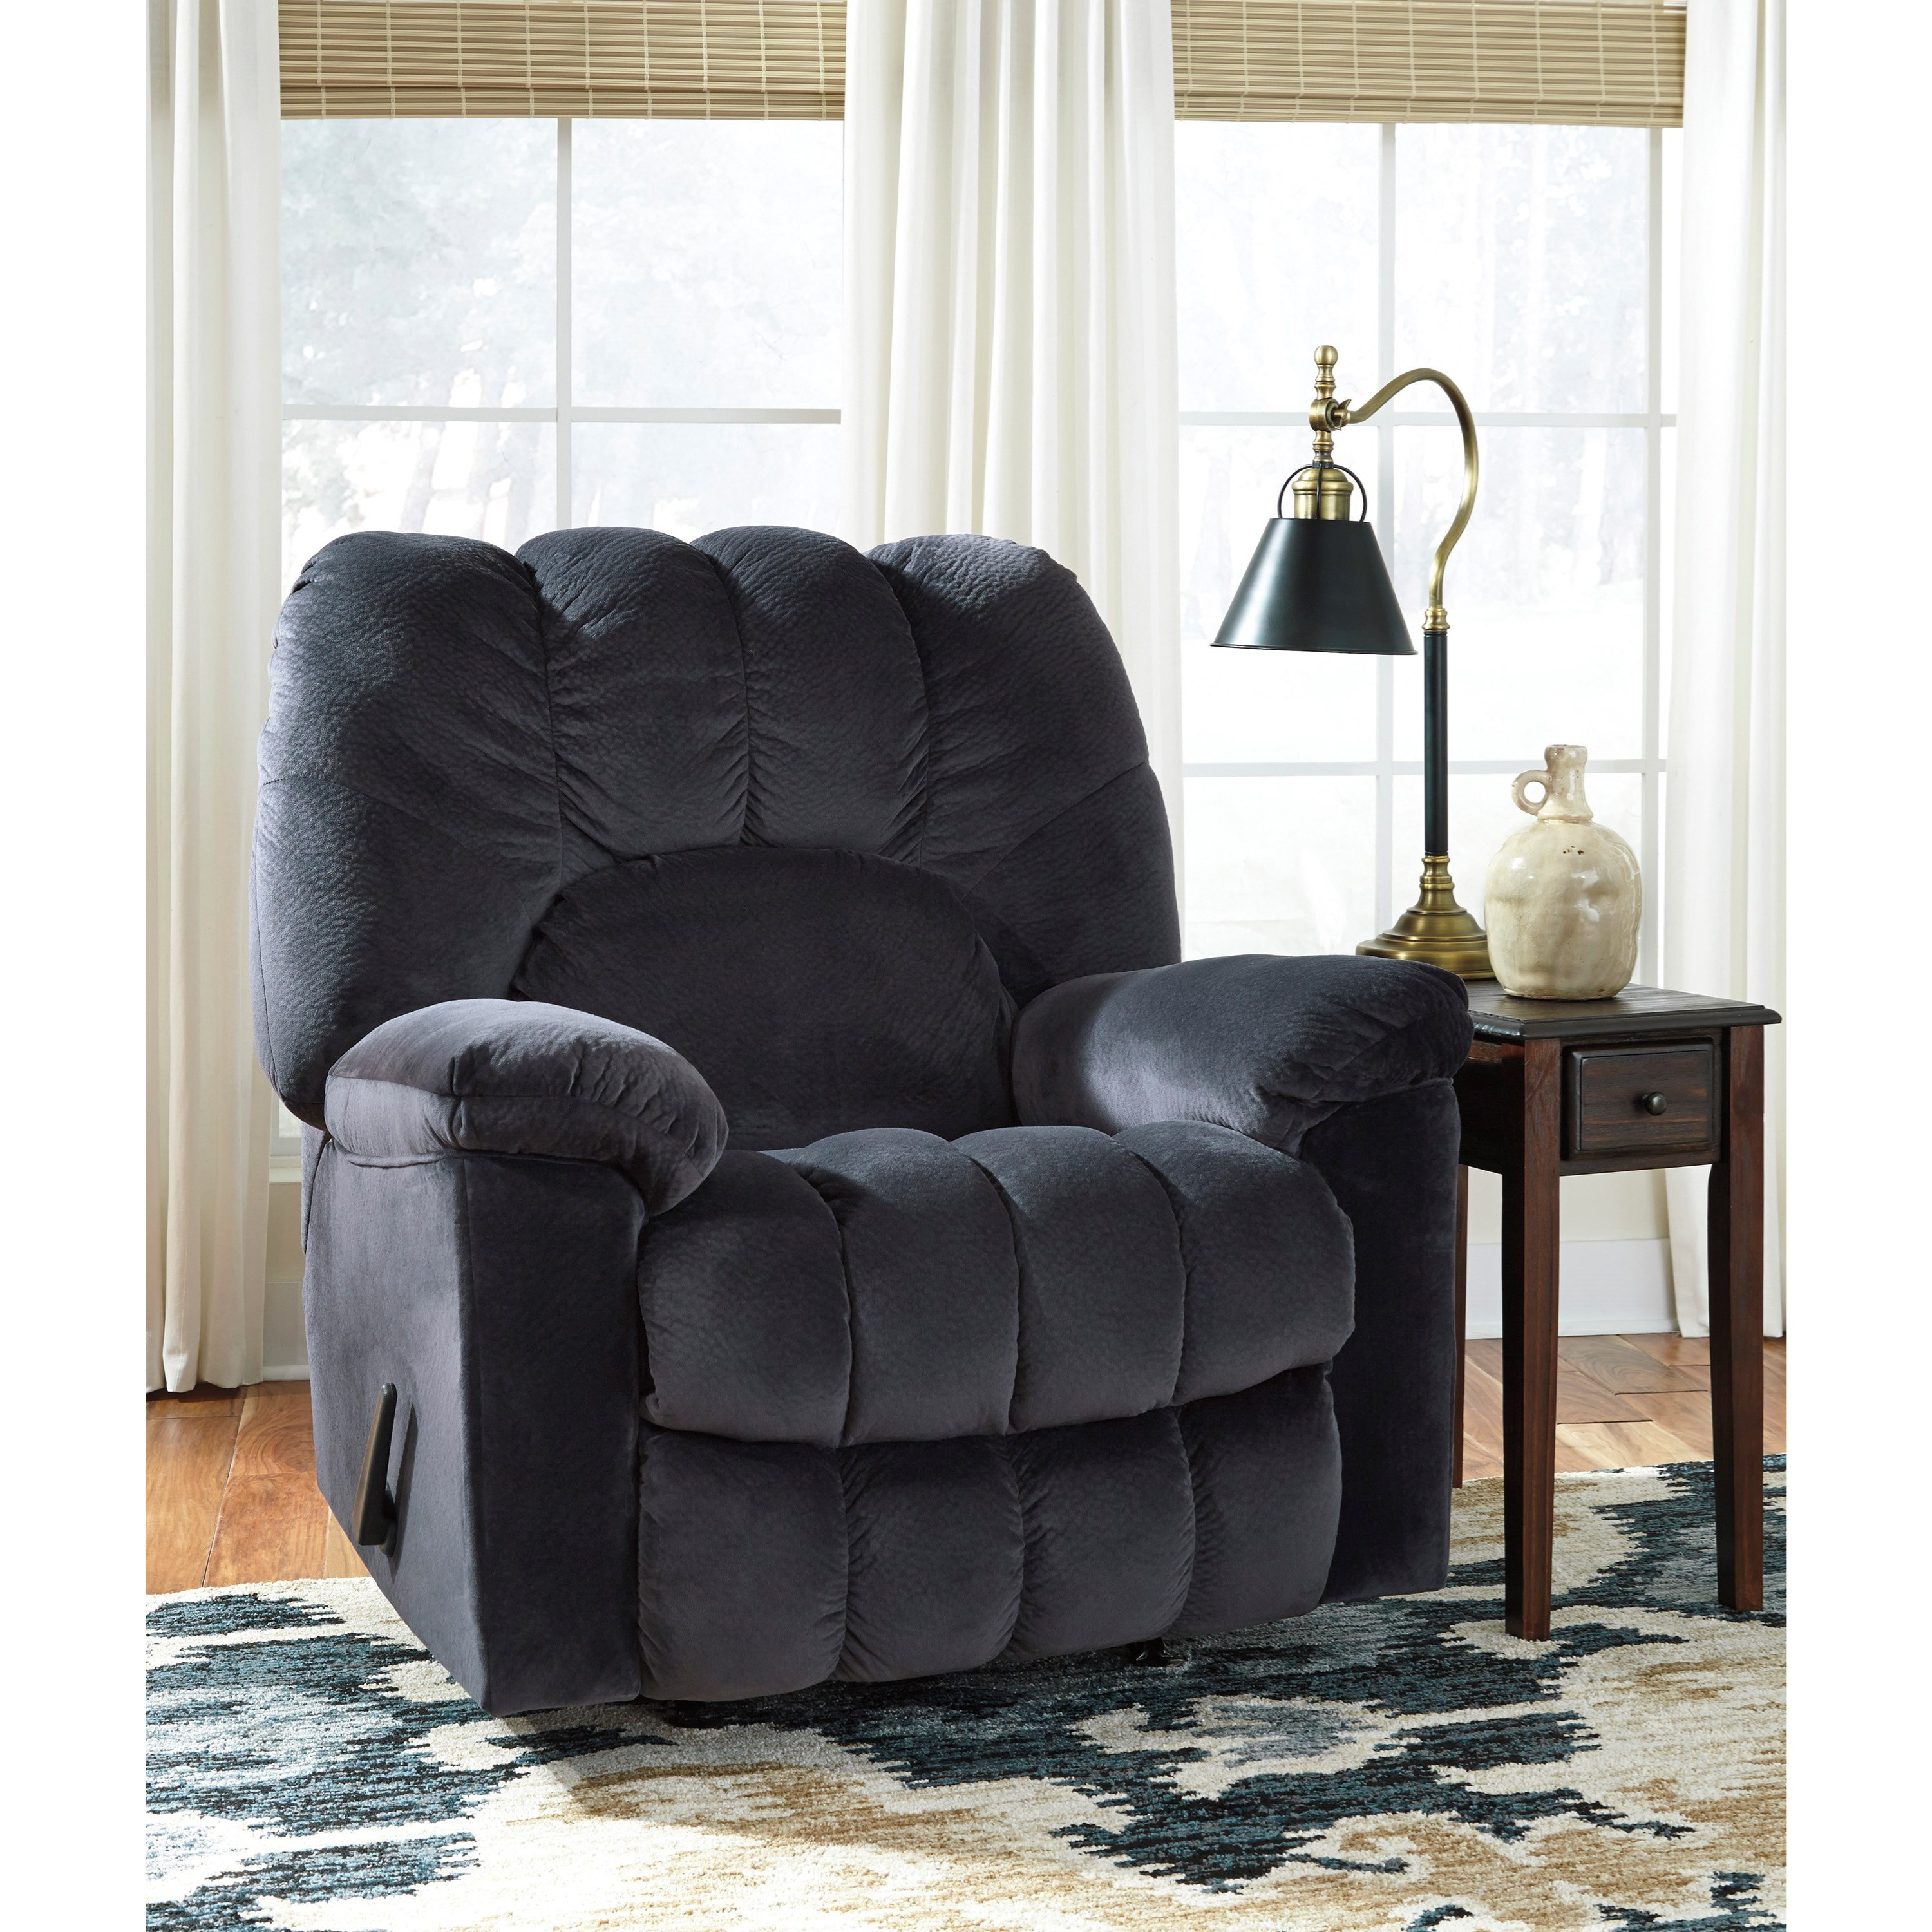 Signature design by ashley dombay 5860325 rocker recliner for Ashley furniture appleton